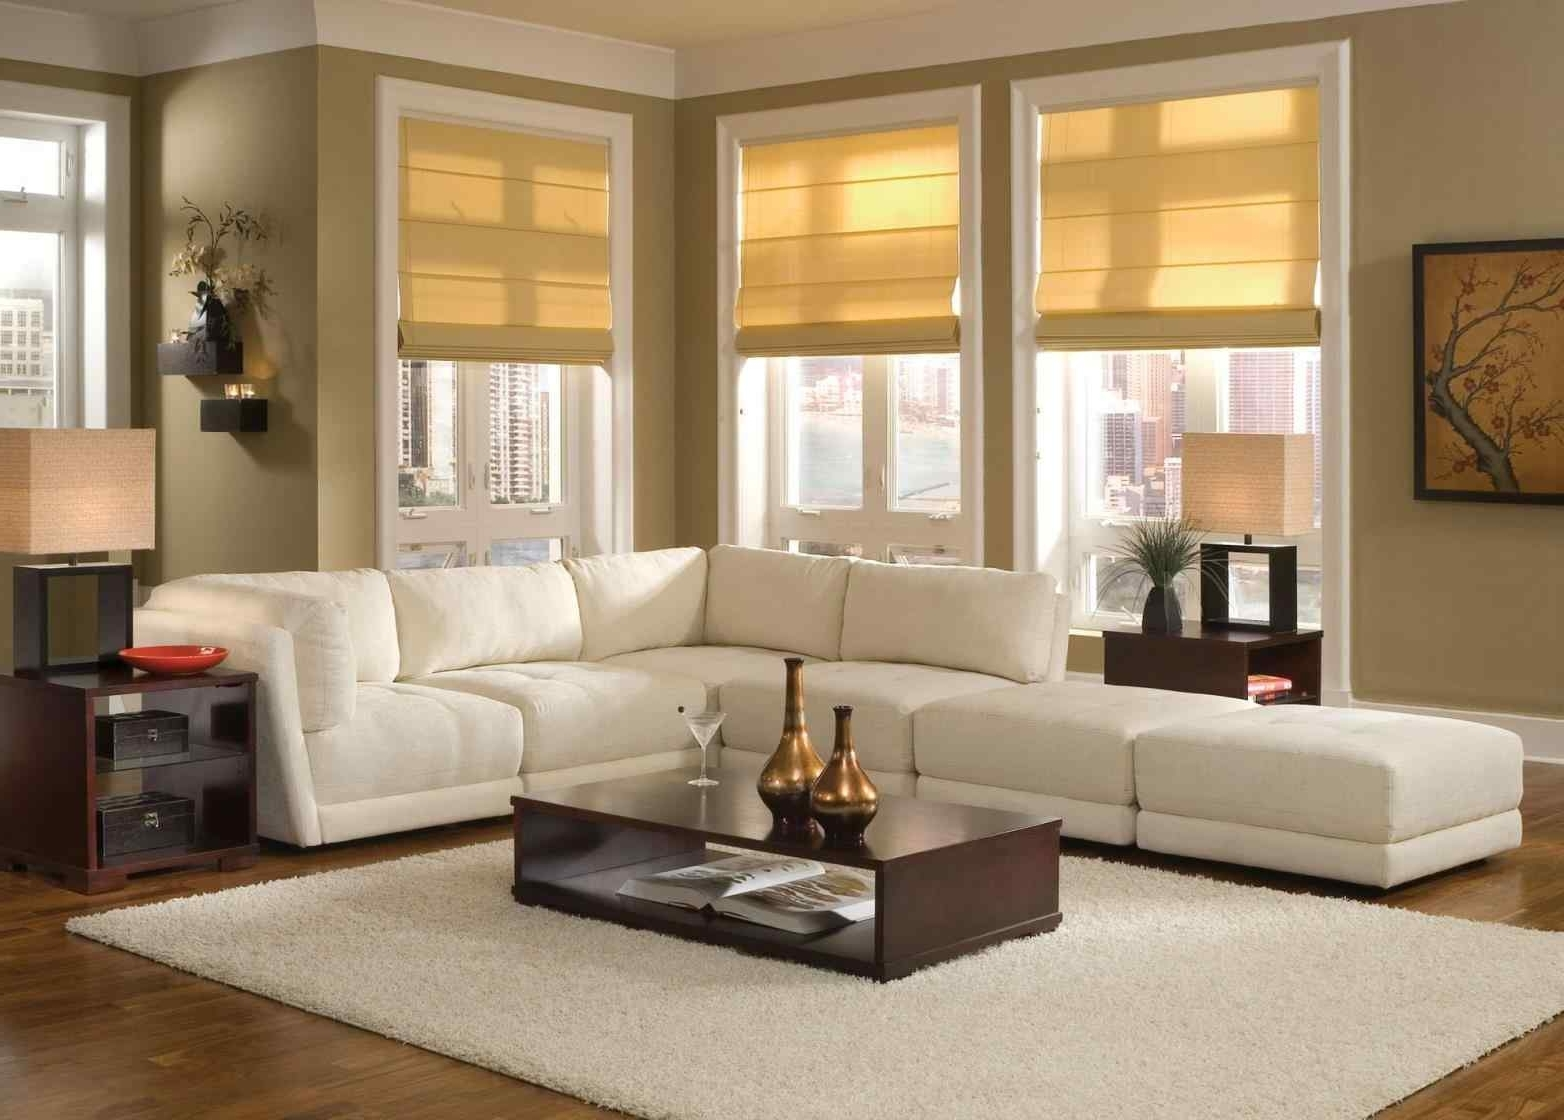 The Images Collection Of Designing Incredible Living Room With Well Known Sectional Sofas Decorating (View 16 of 20)